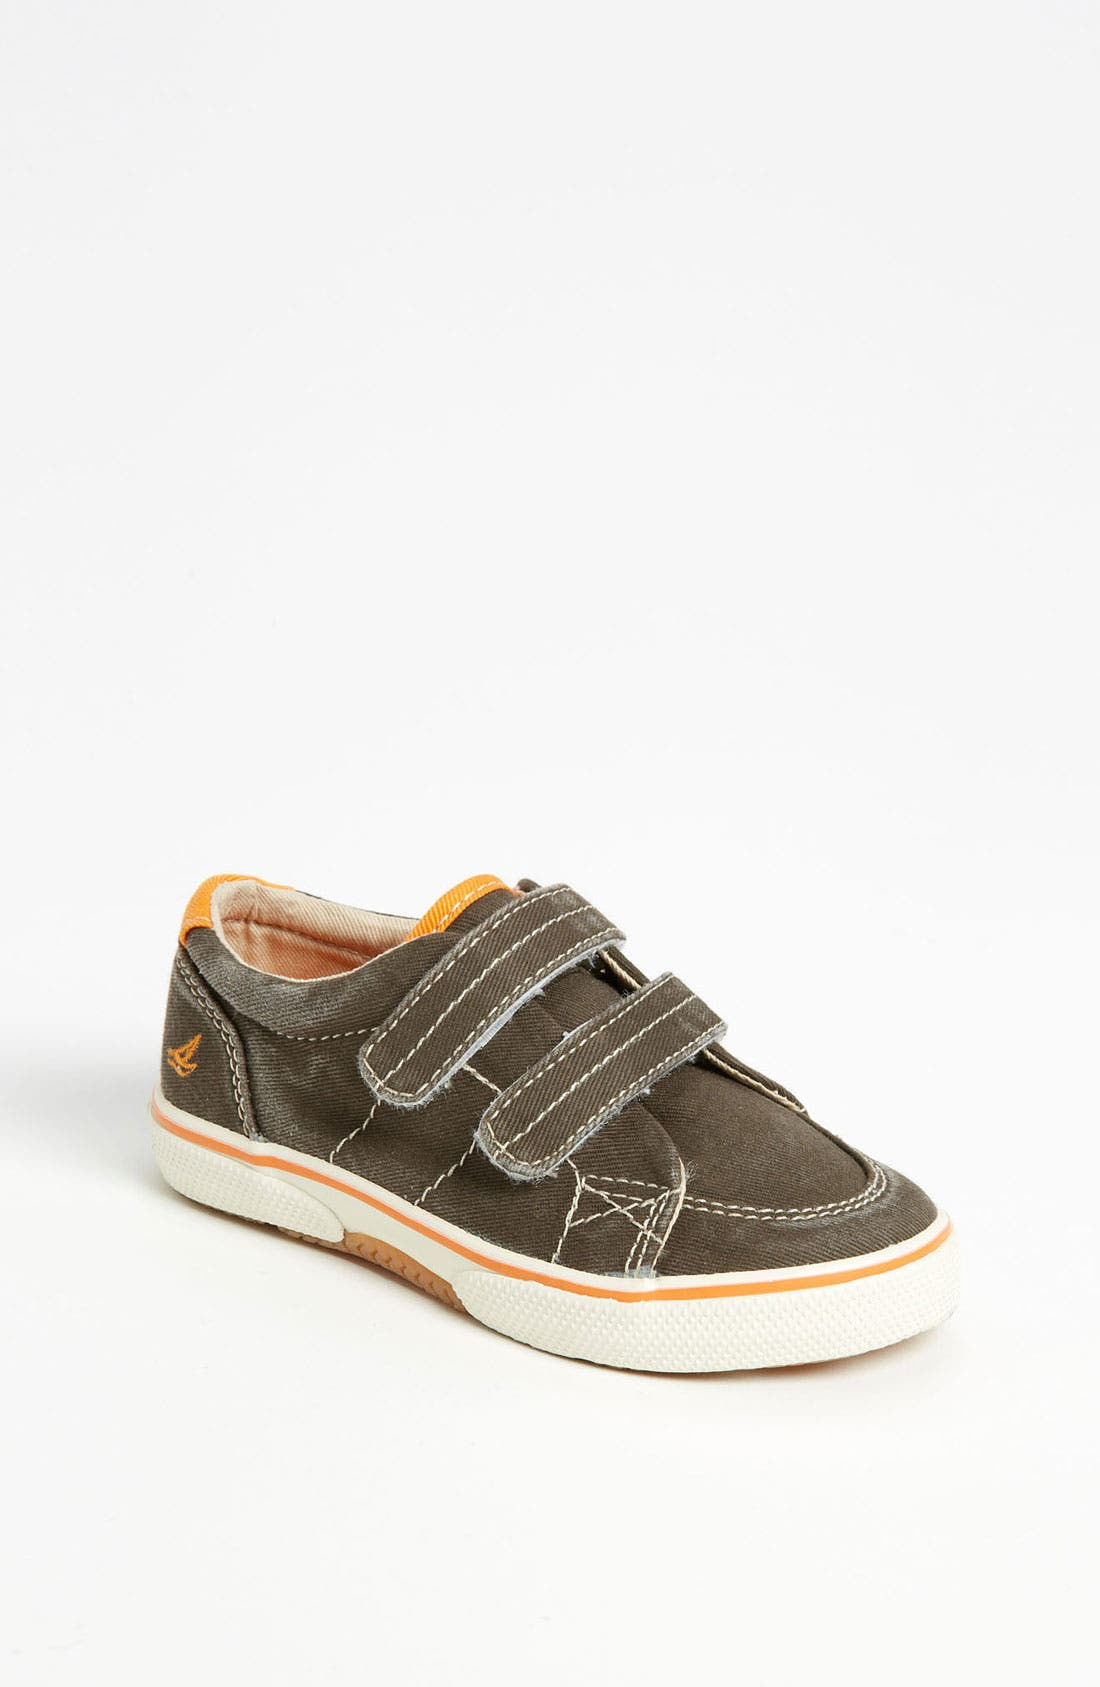 Main Image - Sperry Top-Sider® Kids 'Halyard' Sneaker (Walker & Toddler)